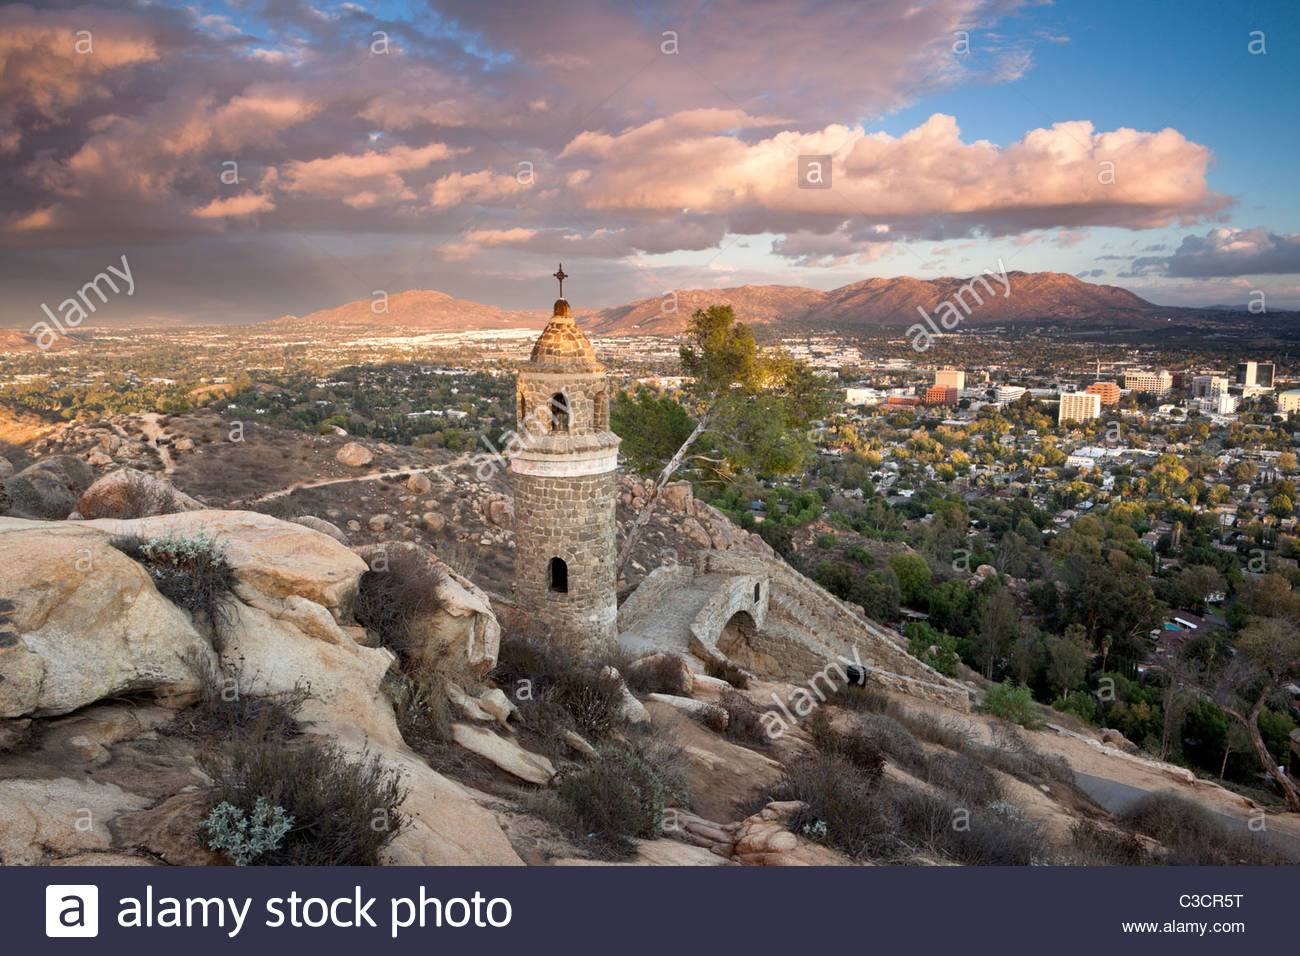 Winter Storm Over Inland Empire from Mount Rubidoux, Riverside, California - Stock Image